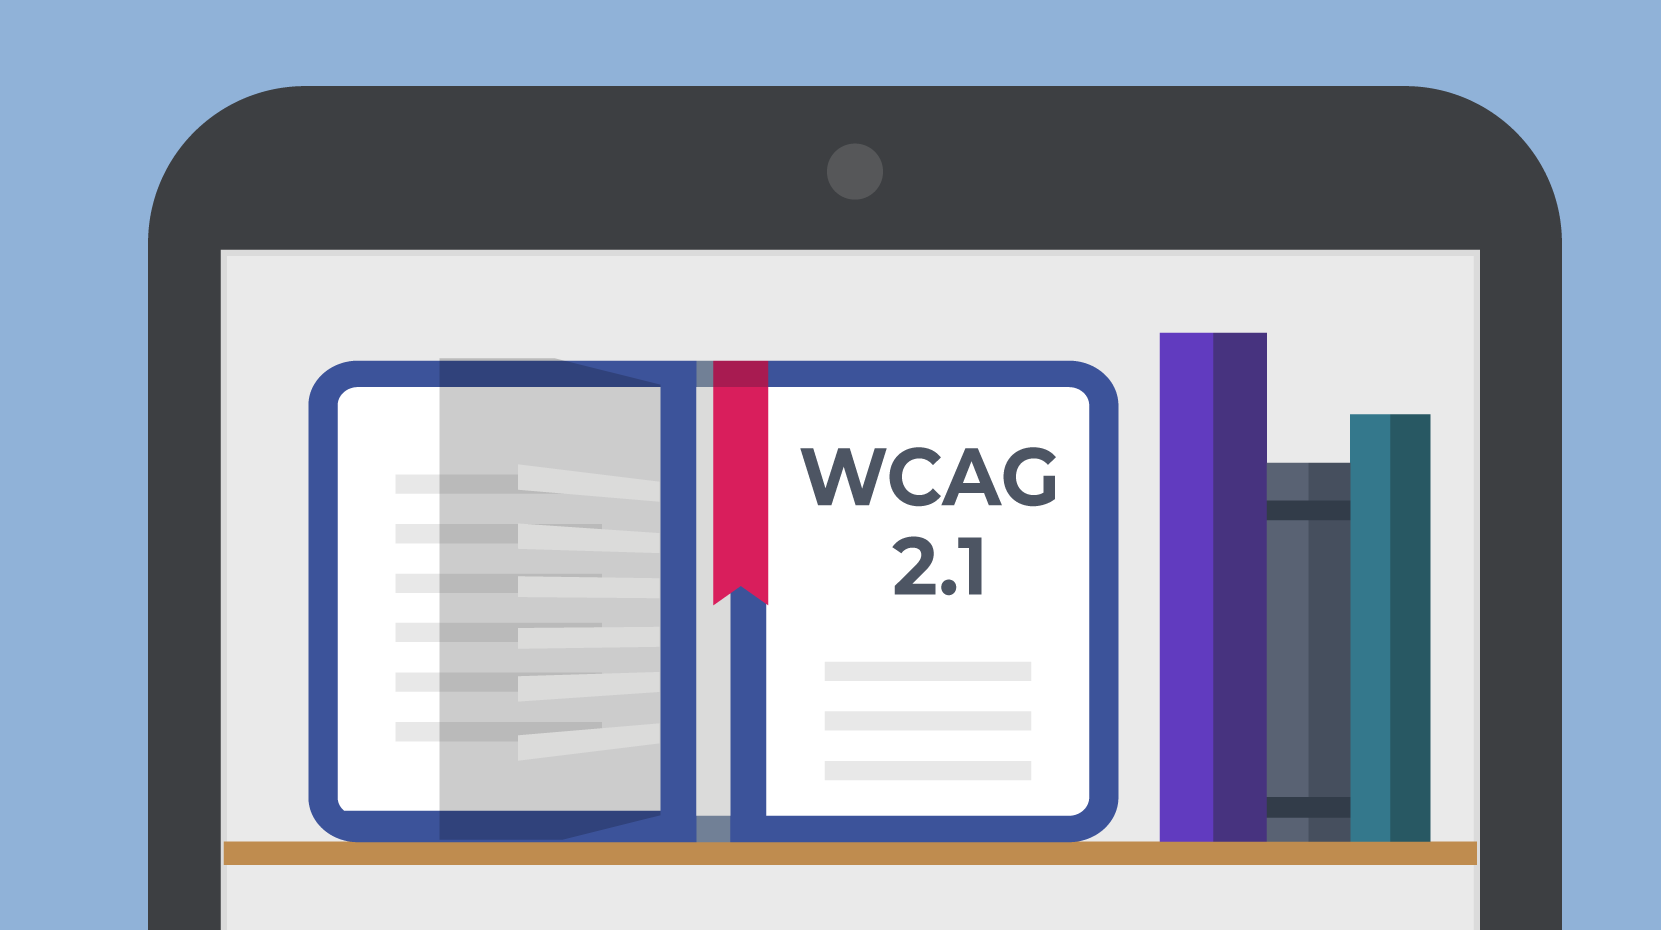 A smartphone displays a bookshelf. An open book is labeled WCAG 2.1